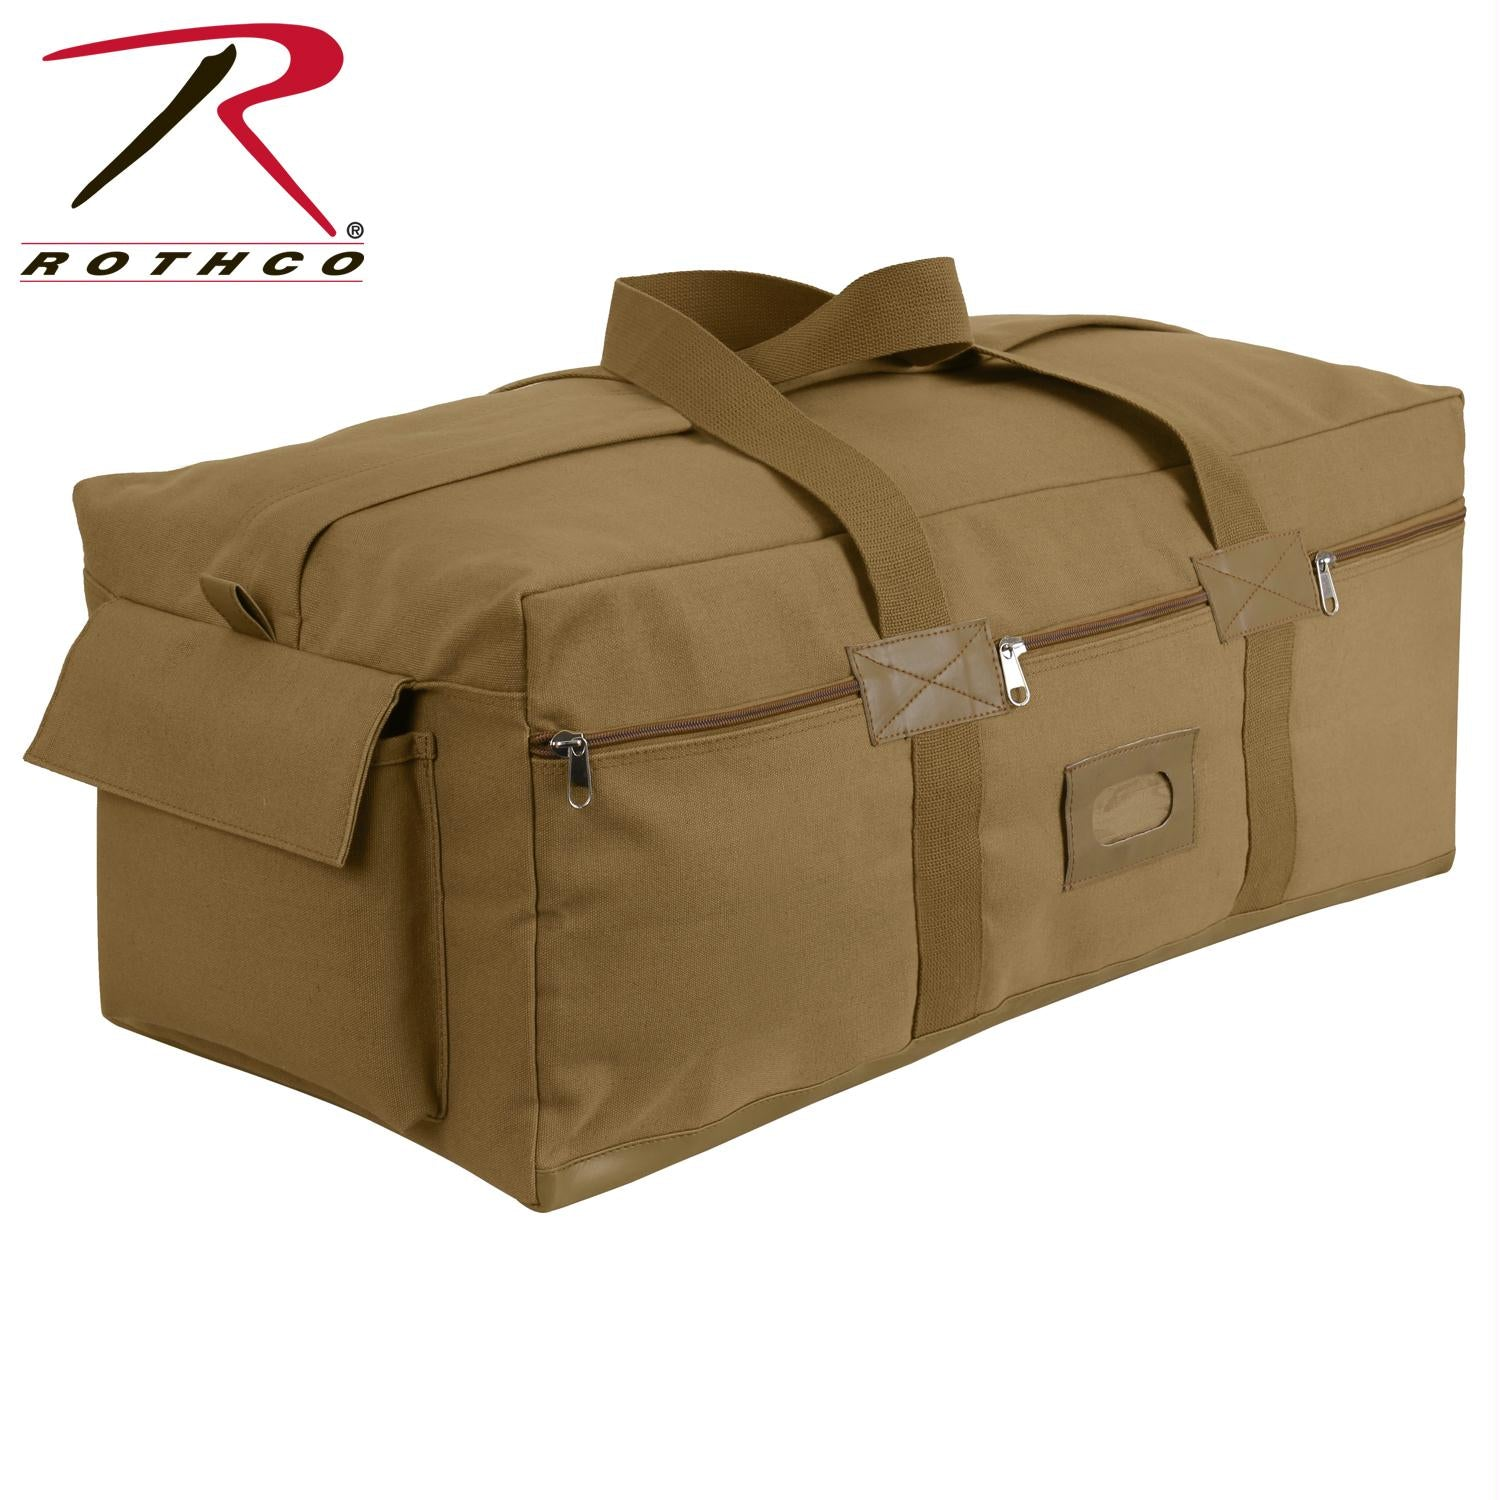 Rothco Canvas Israeli Type Duffle Bag - Coyote Brown